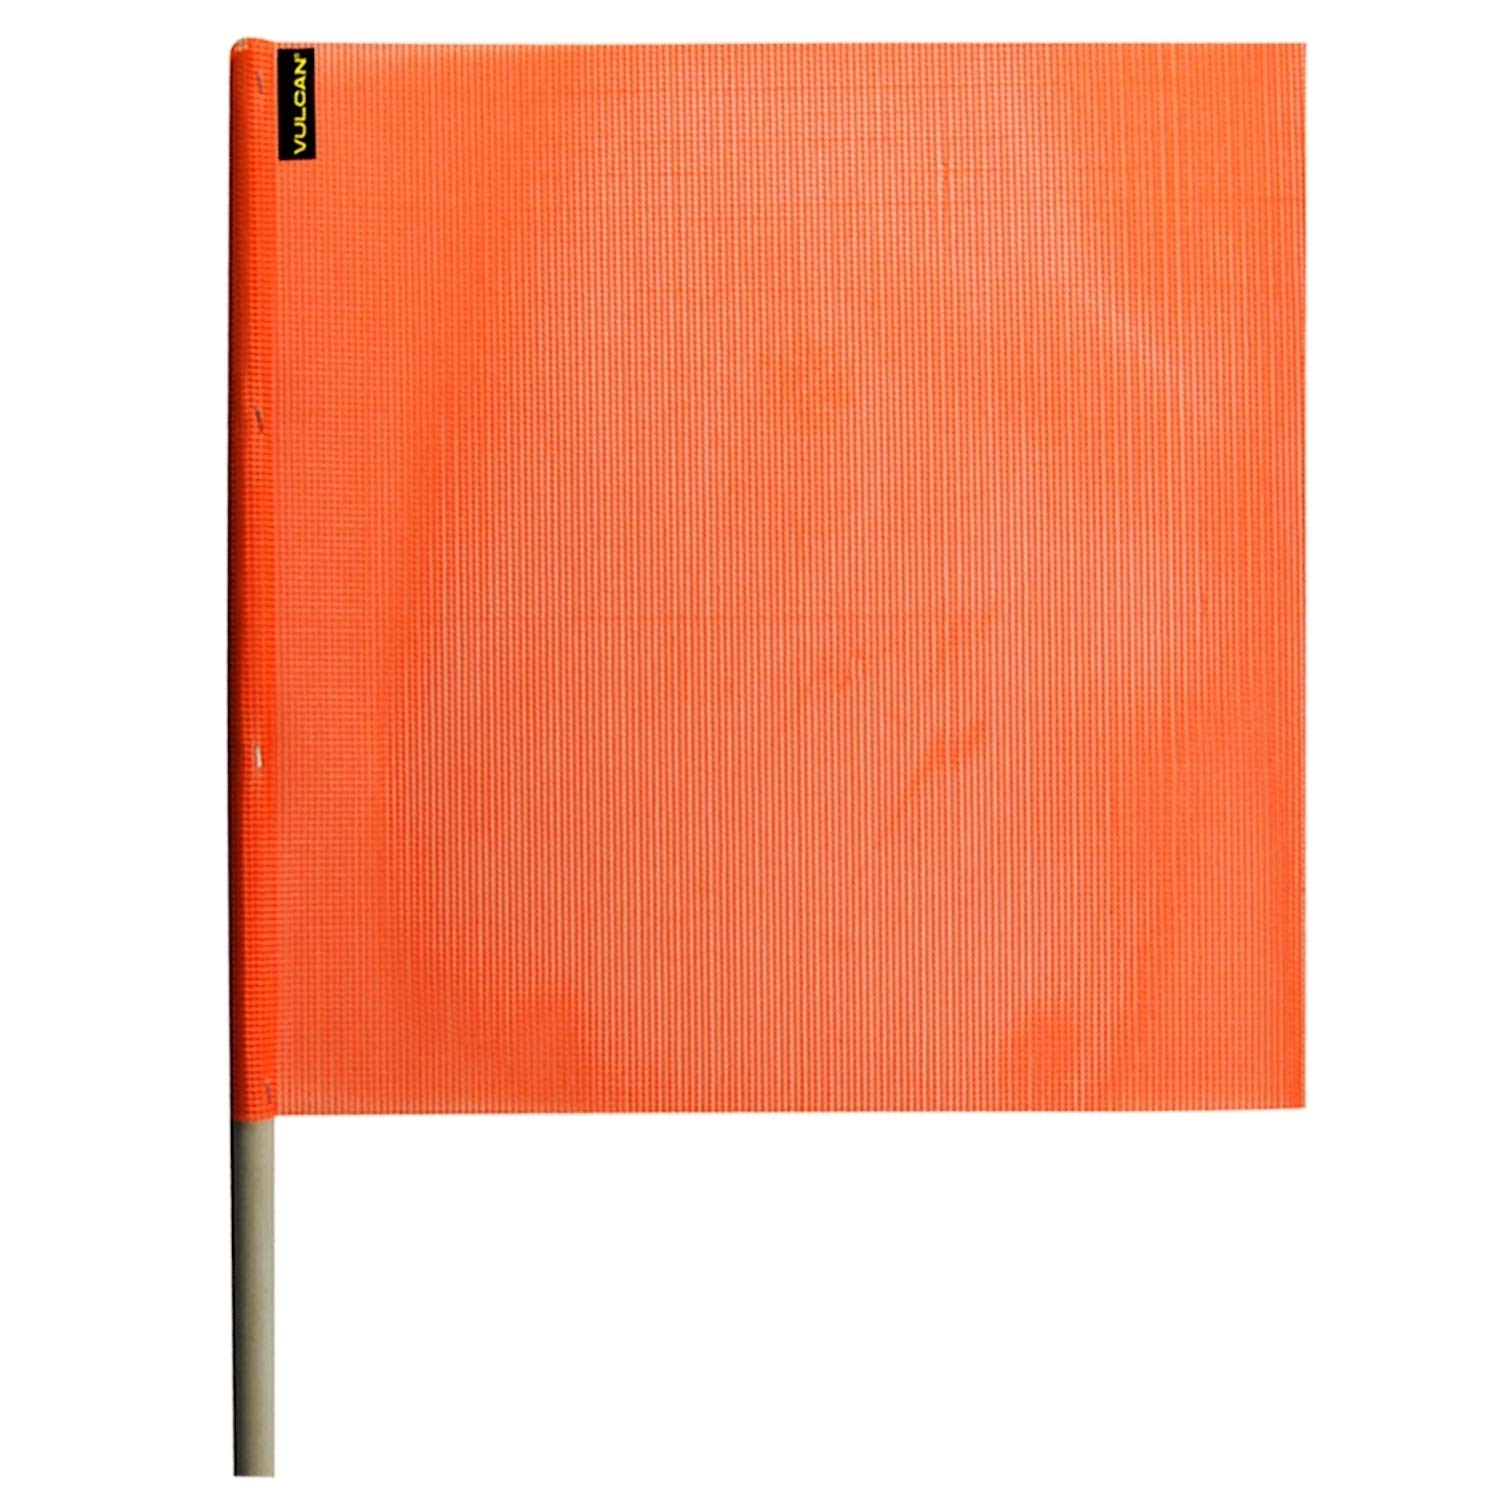 Vulcan Brands Bright Orange Safety Flag with Dowel for Oversized and Wide Loads 18 x 18 - Vinyl Coated Nylon Mesh Construction - 4 Pack